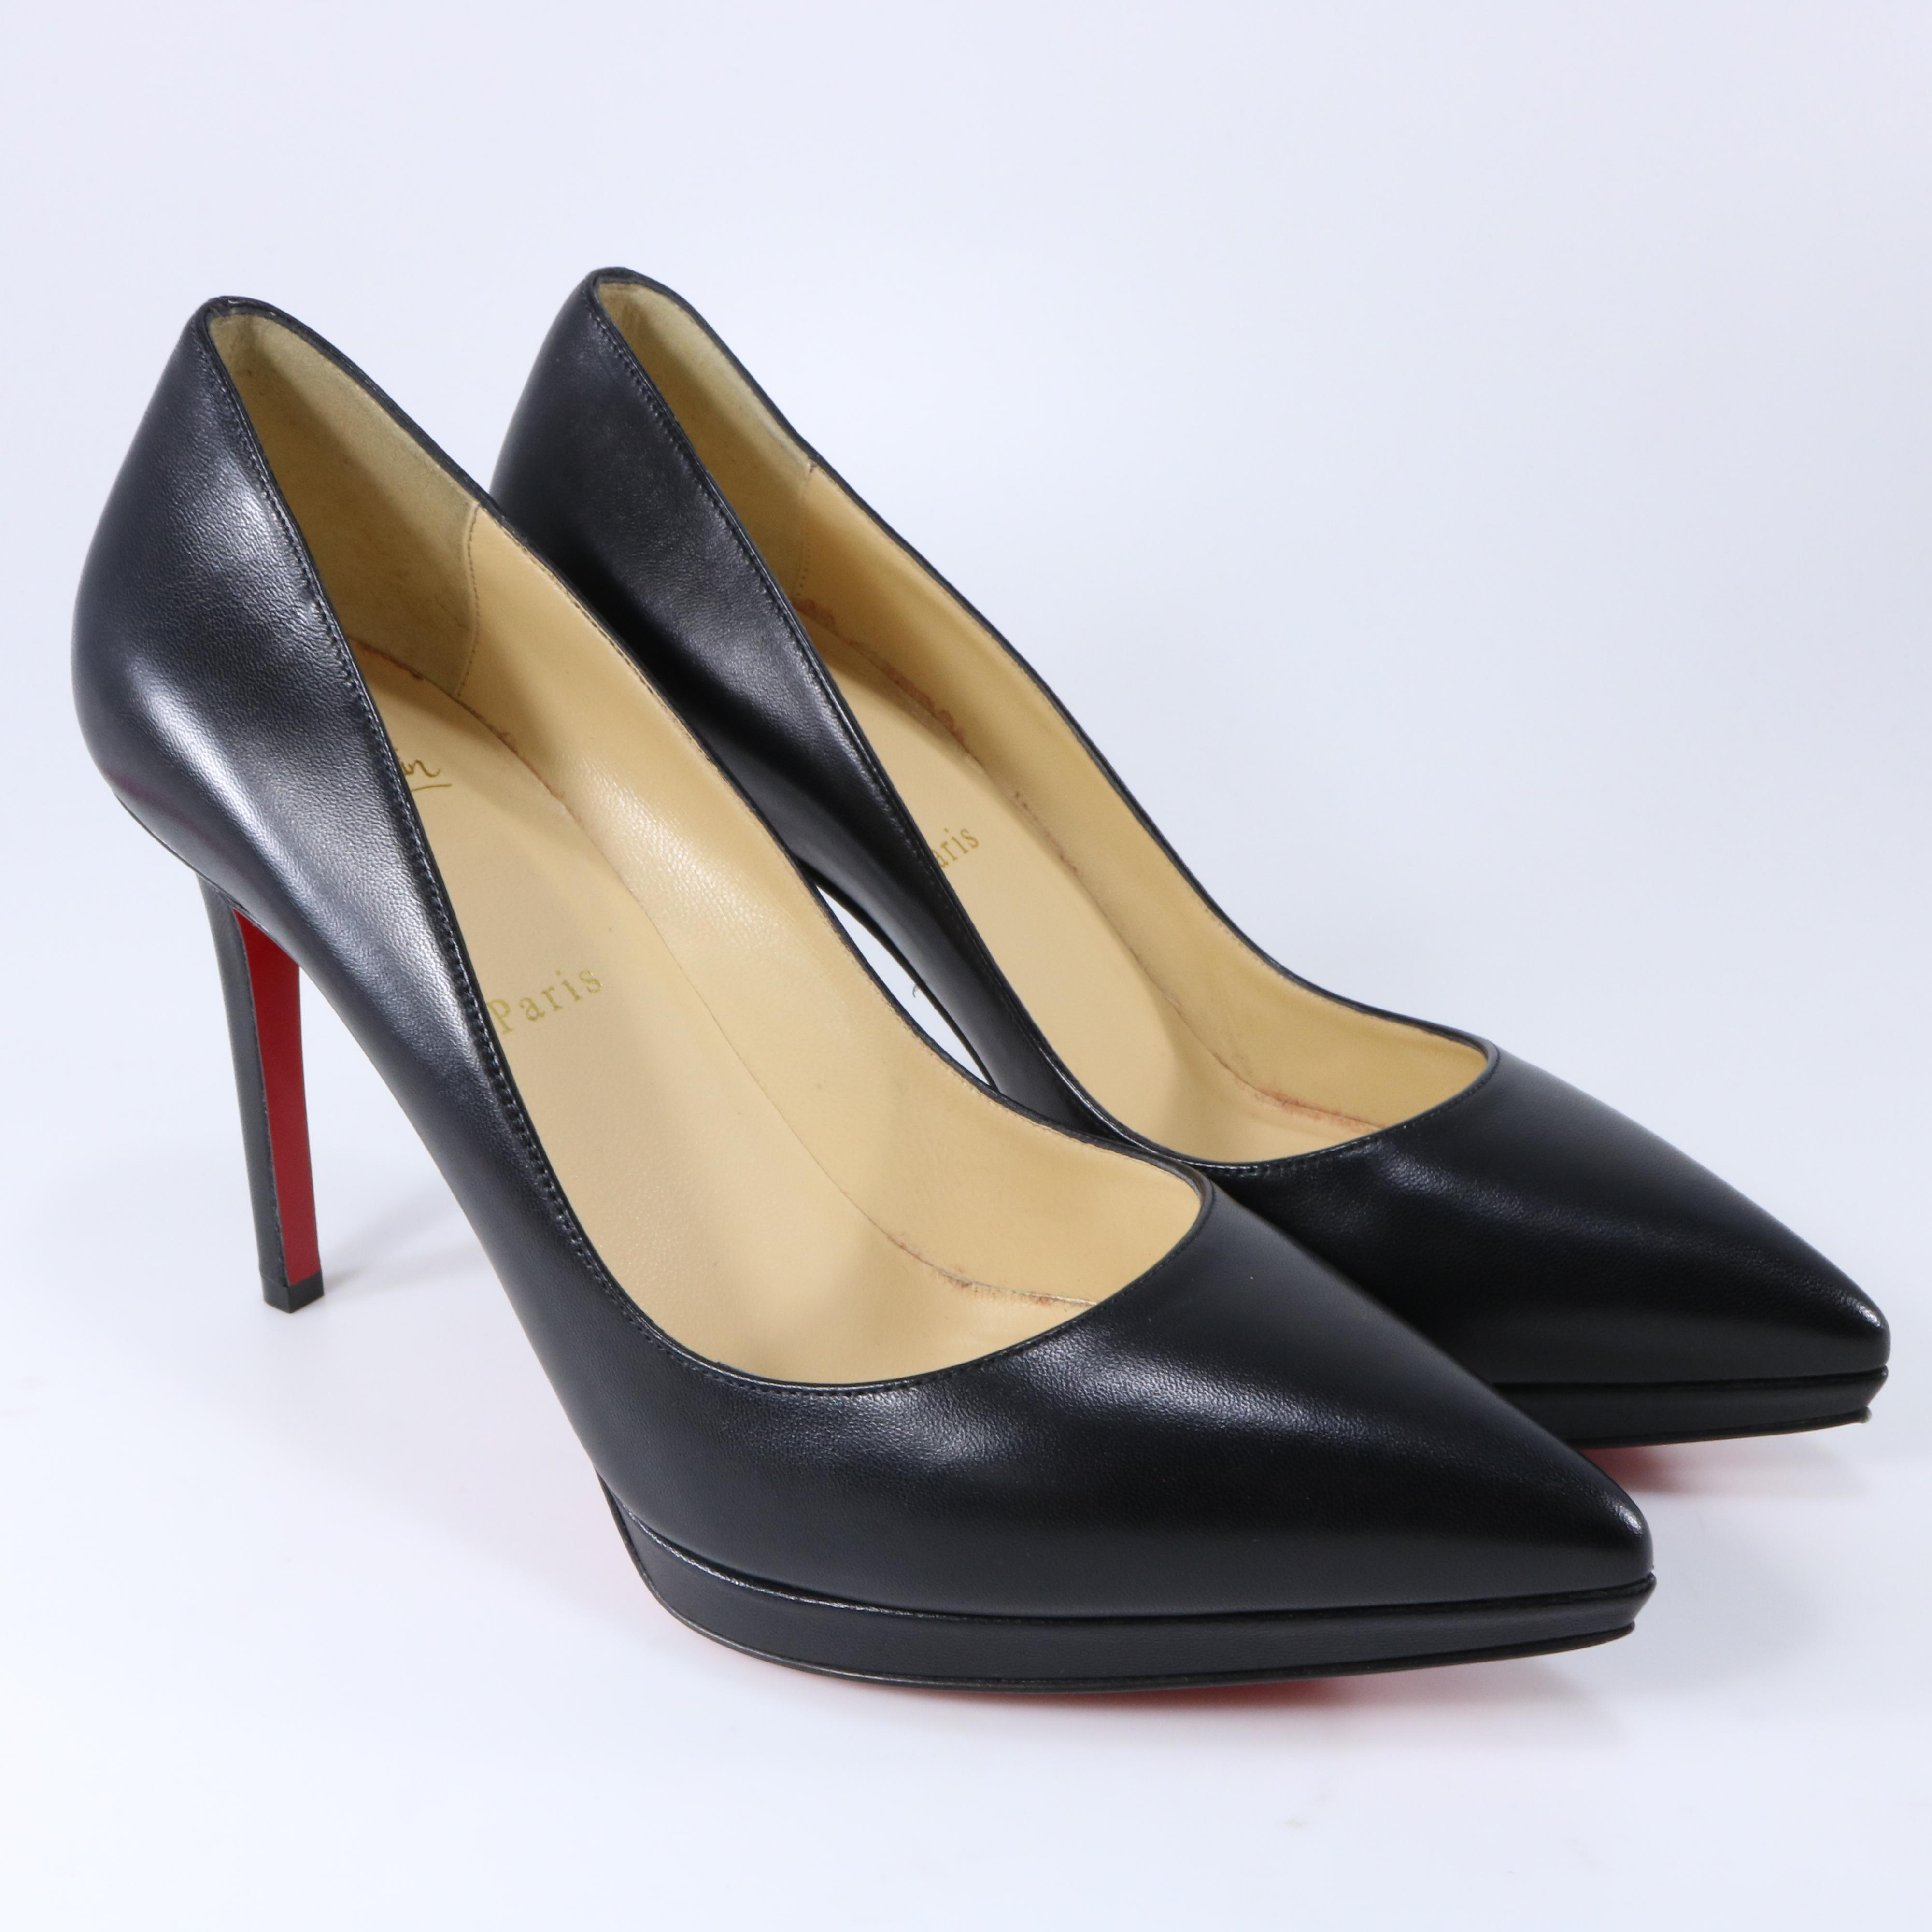 brand new 7c804 8424e Christian Louboutin Black Pigalle Pigalle Pigalle Plato ...